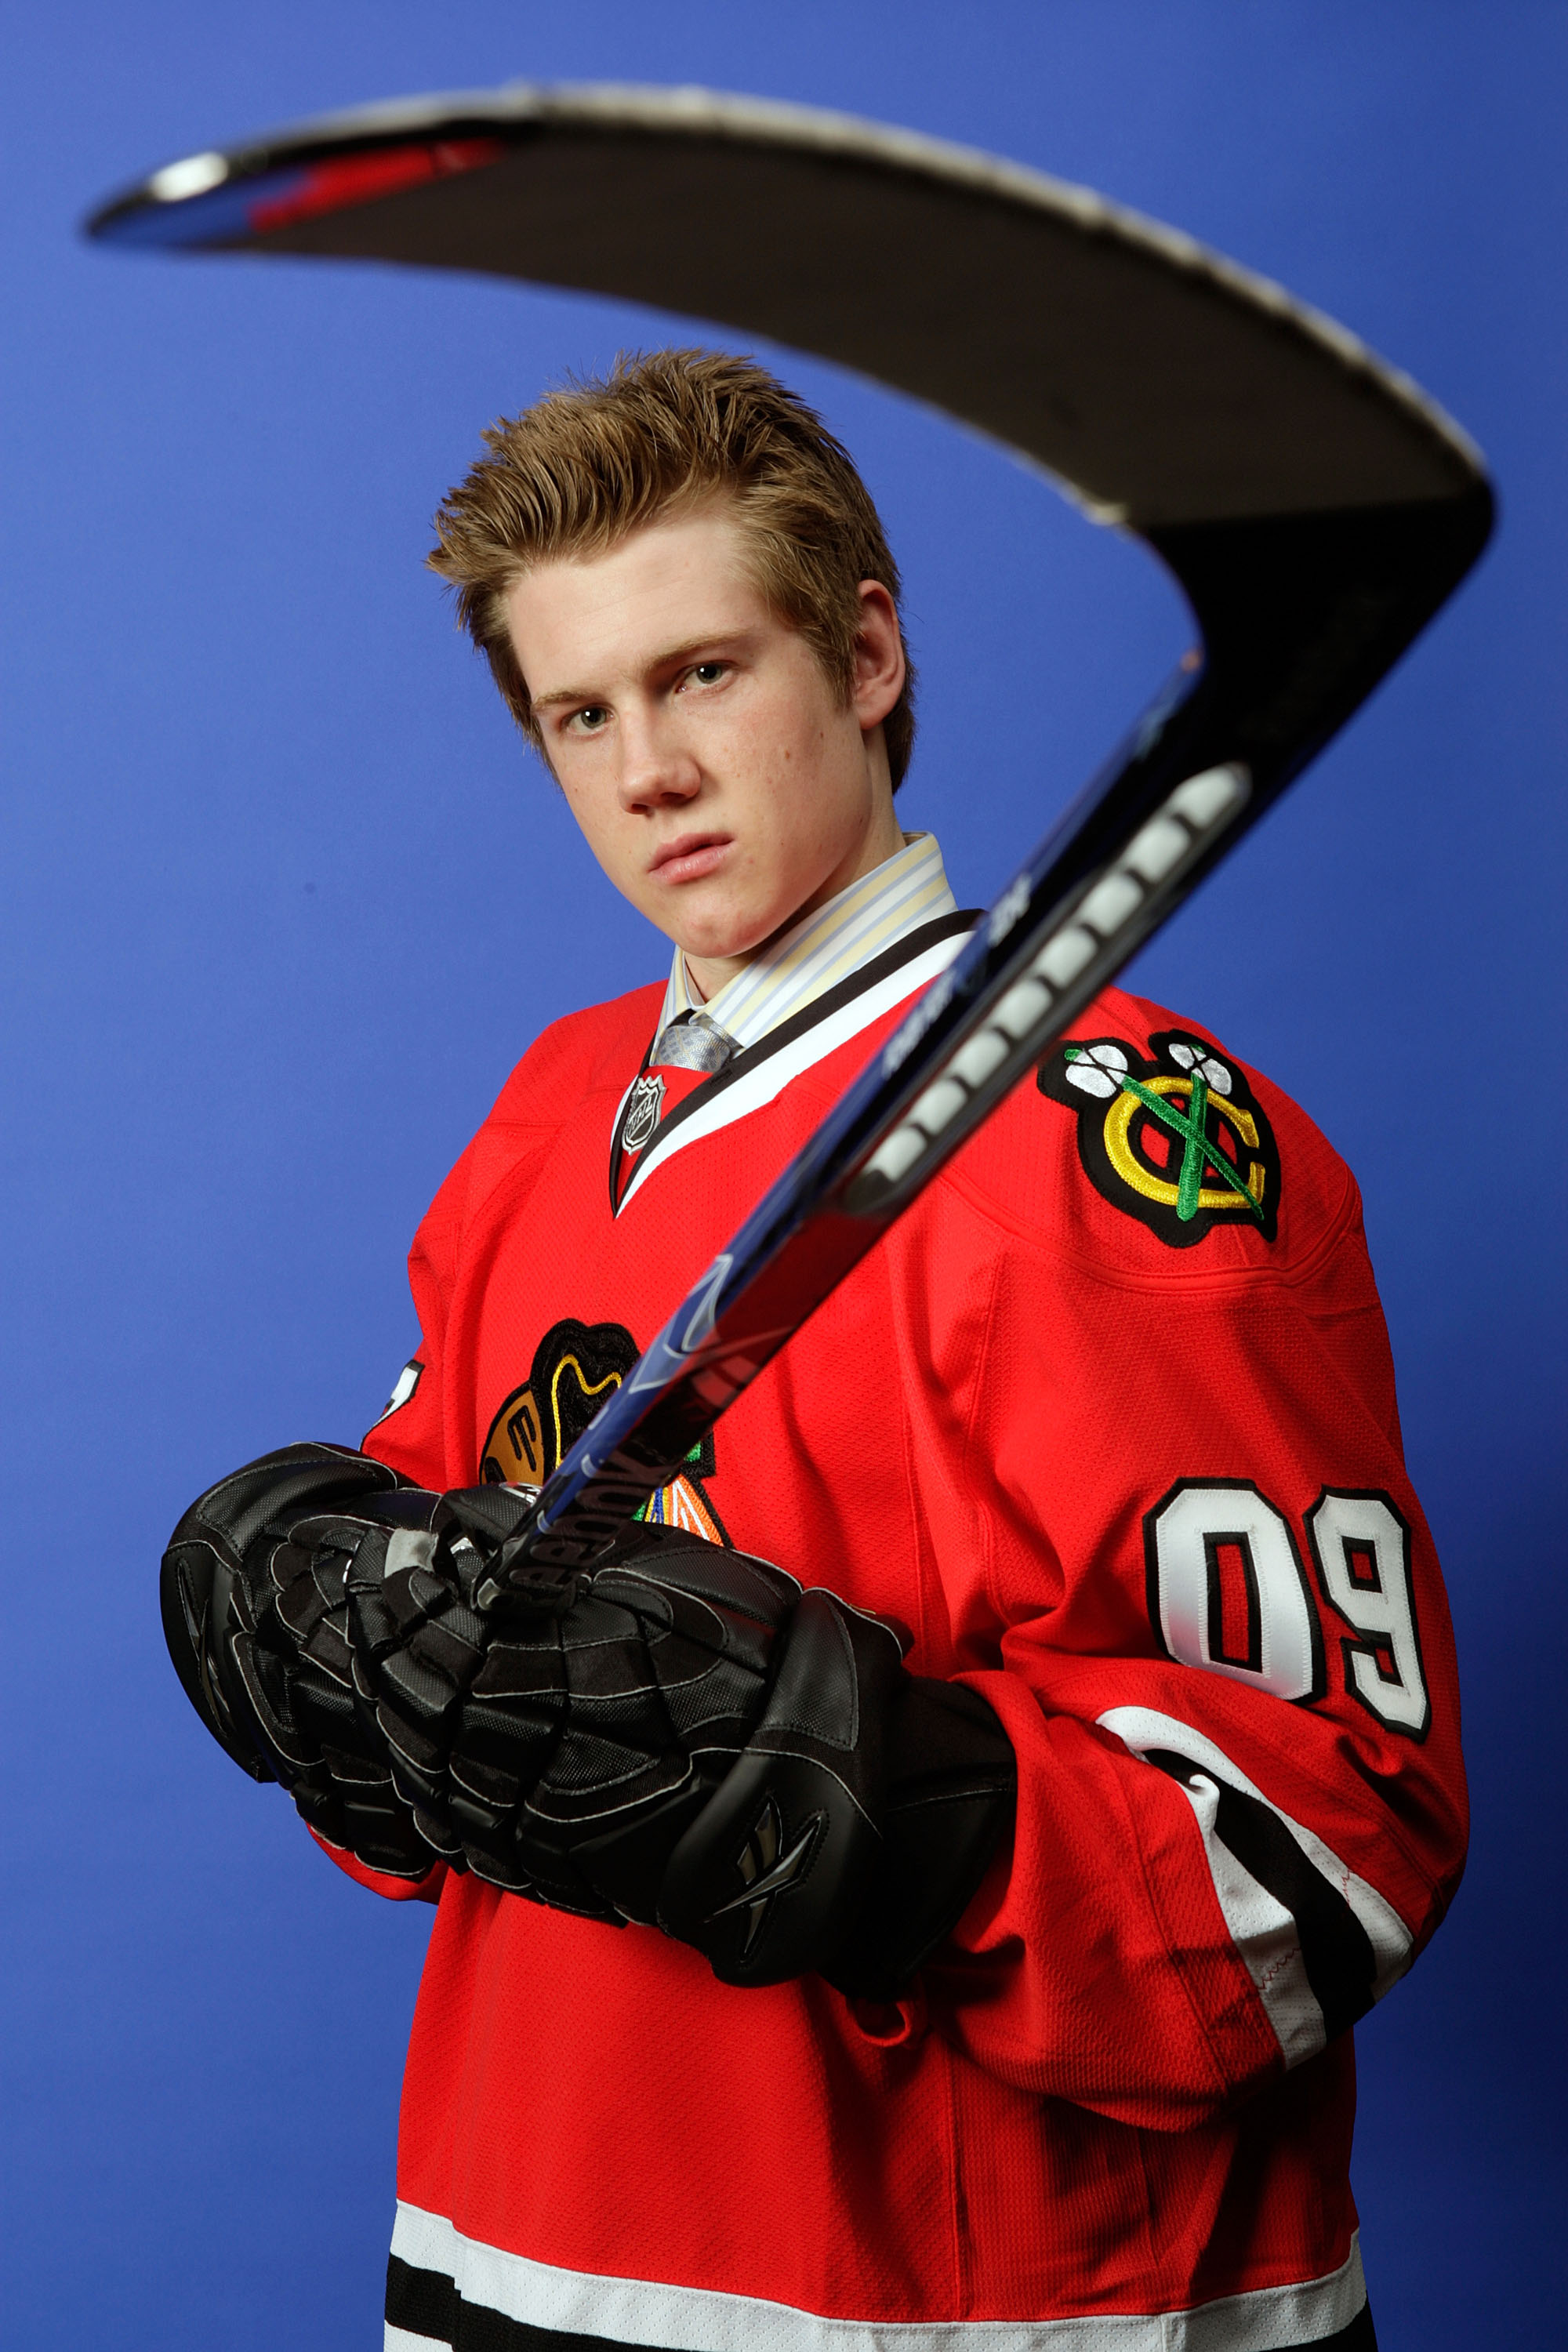 MONTREAL, QC - JUNE 26:  Dylan Olsen of the Chicago Blackhawks poses for a portrait  after he was selected #28 overall by the Blackhawks during the first round of the 2009 NHL Entry Draft at the Bell Centre on June 26, 2009 in Montreal, Quebec, Canada.  (